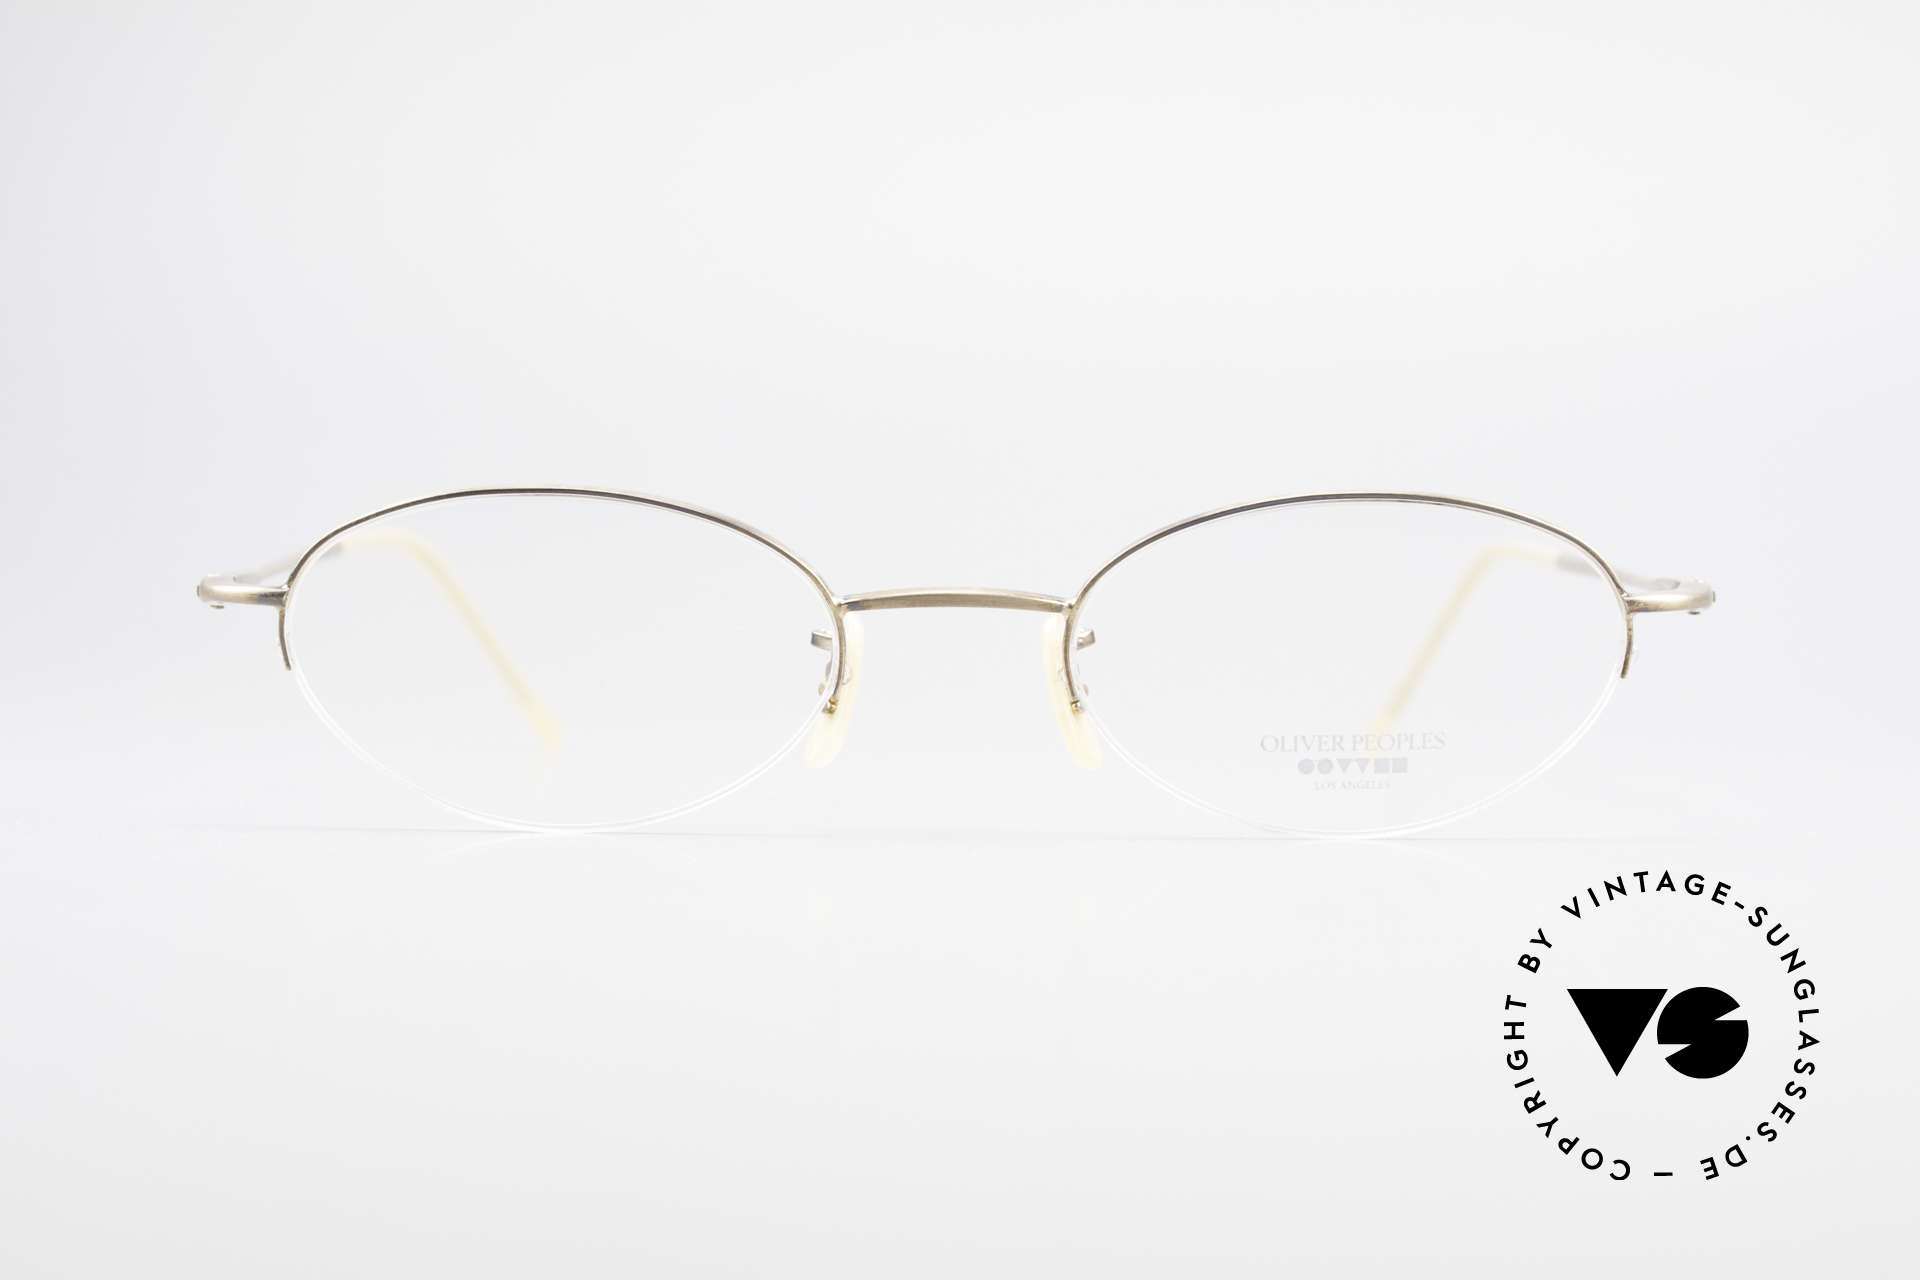 Oliver Peoples OP599 Oval Eyeglass-Frame Clip On, Size: small, Made for Men and Women